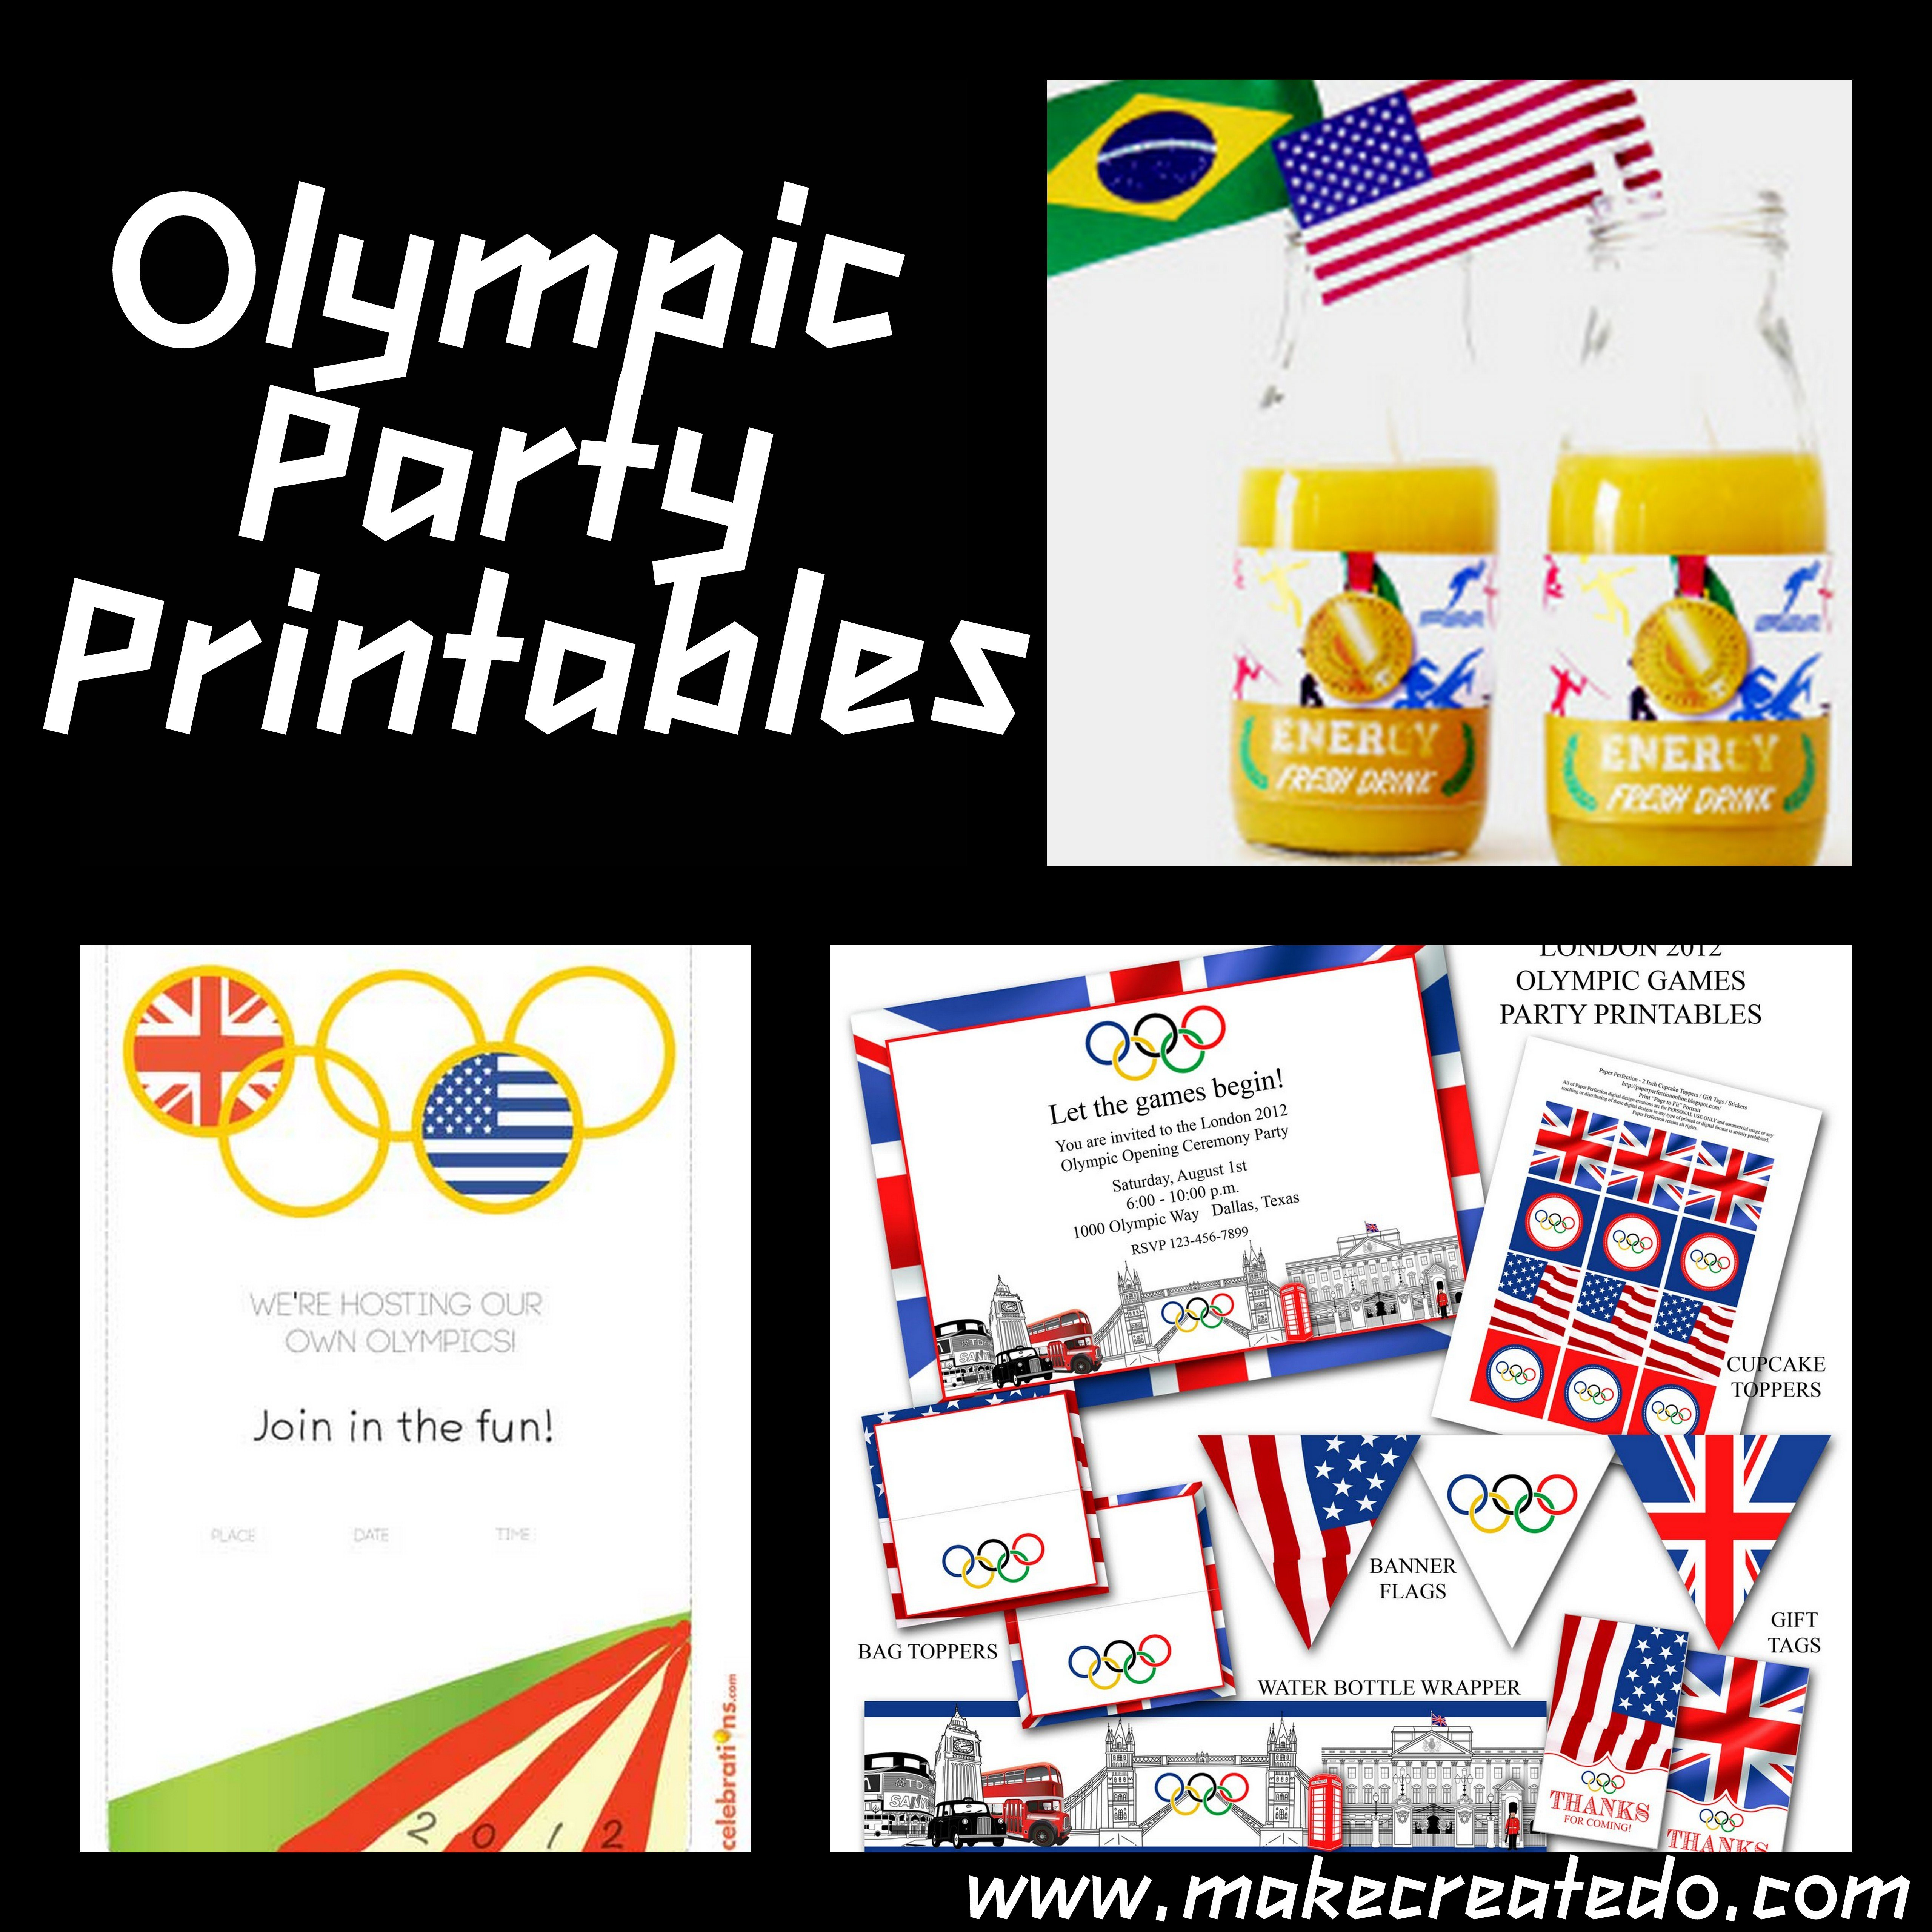 Olympic Party Invitations Printable